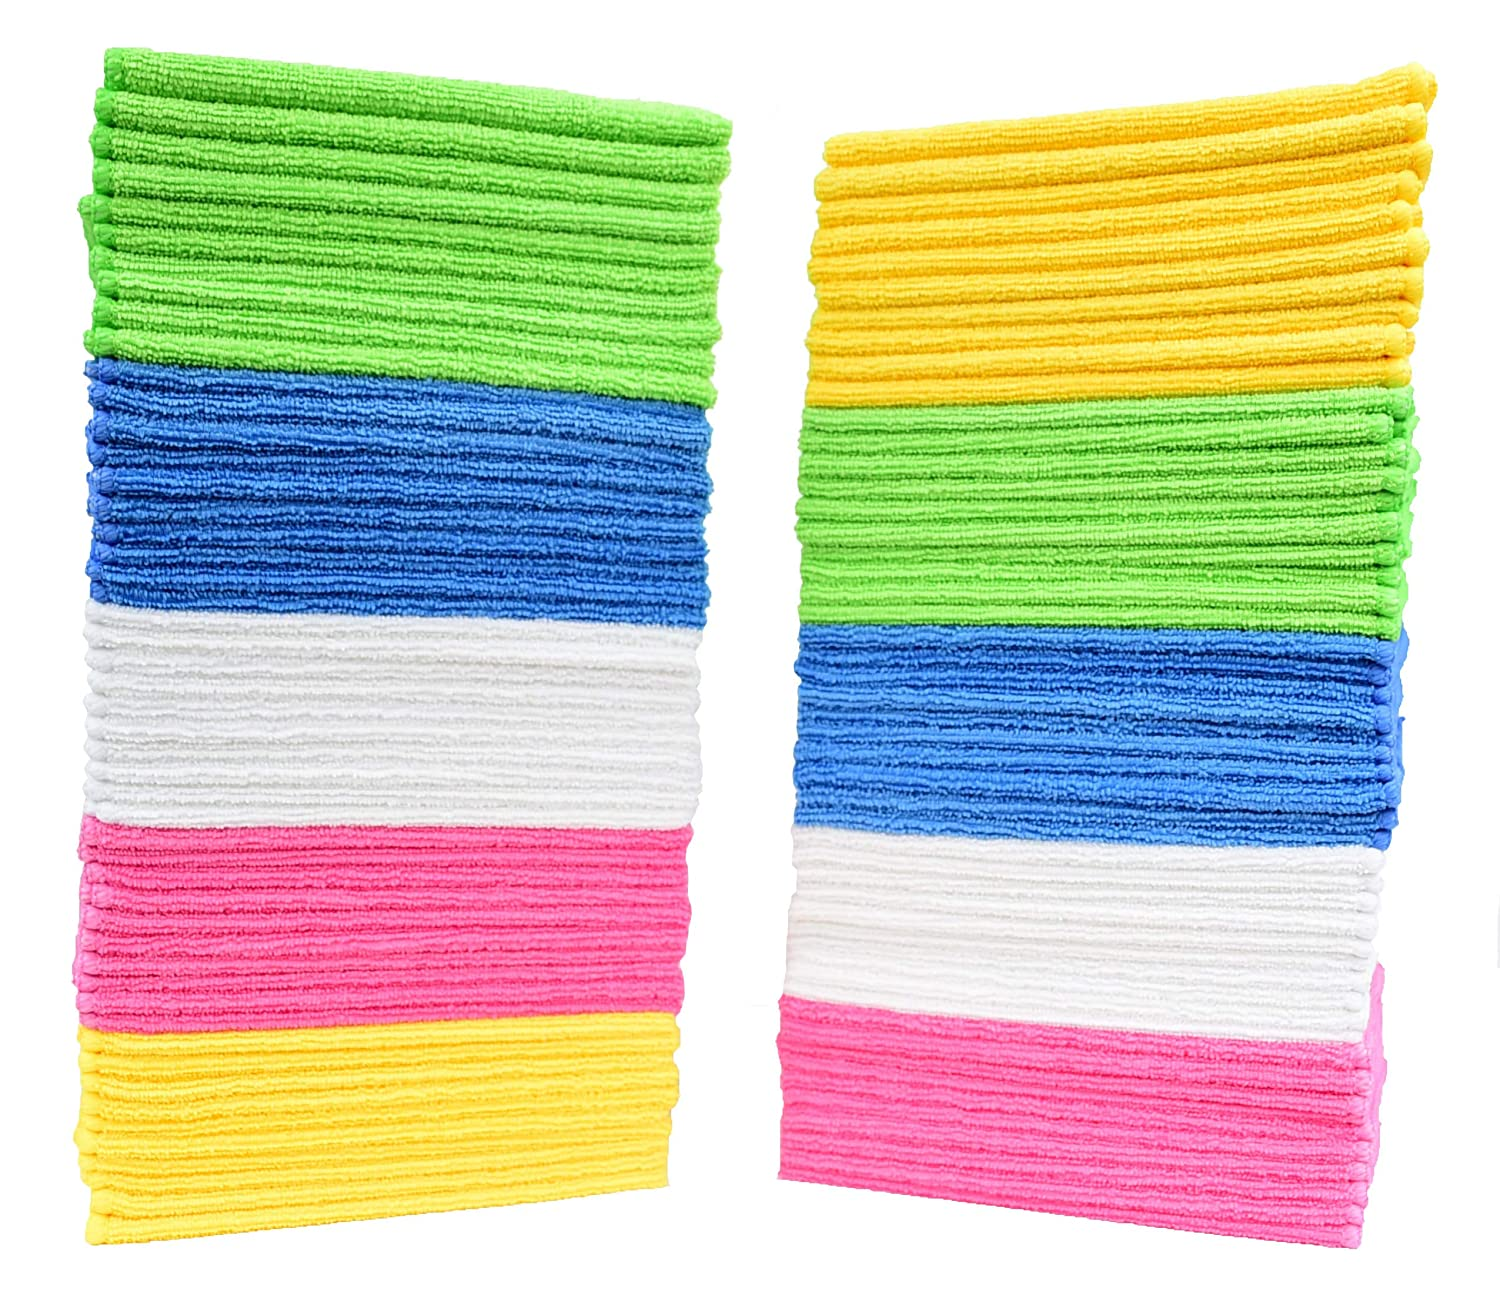 Simpli-Magic 79130 Microfiber Cleaning Cloths (Pack of 50) Large Size Ideal for Home, Kitchen, Auto, Glass and Pets 5 Colors Included